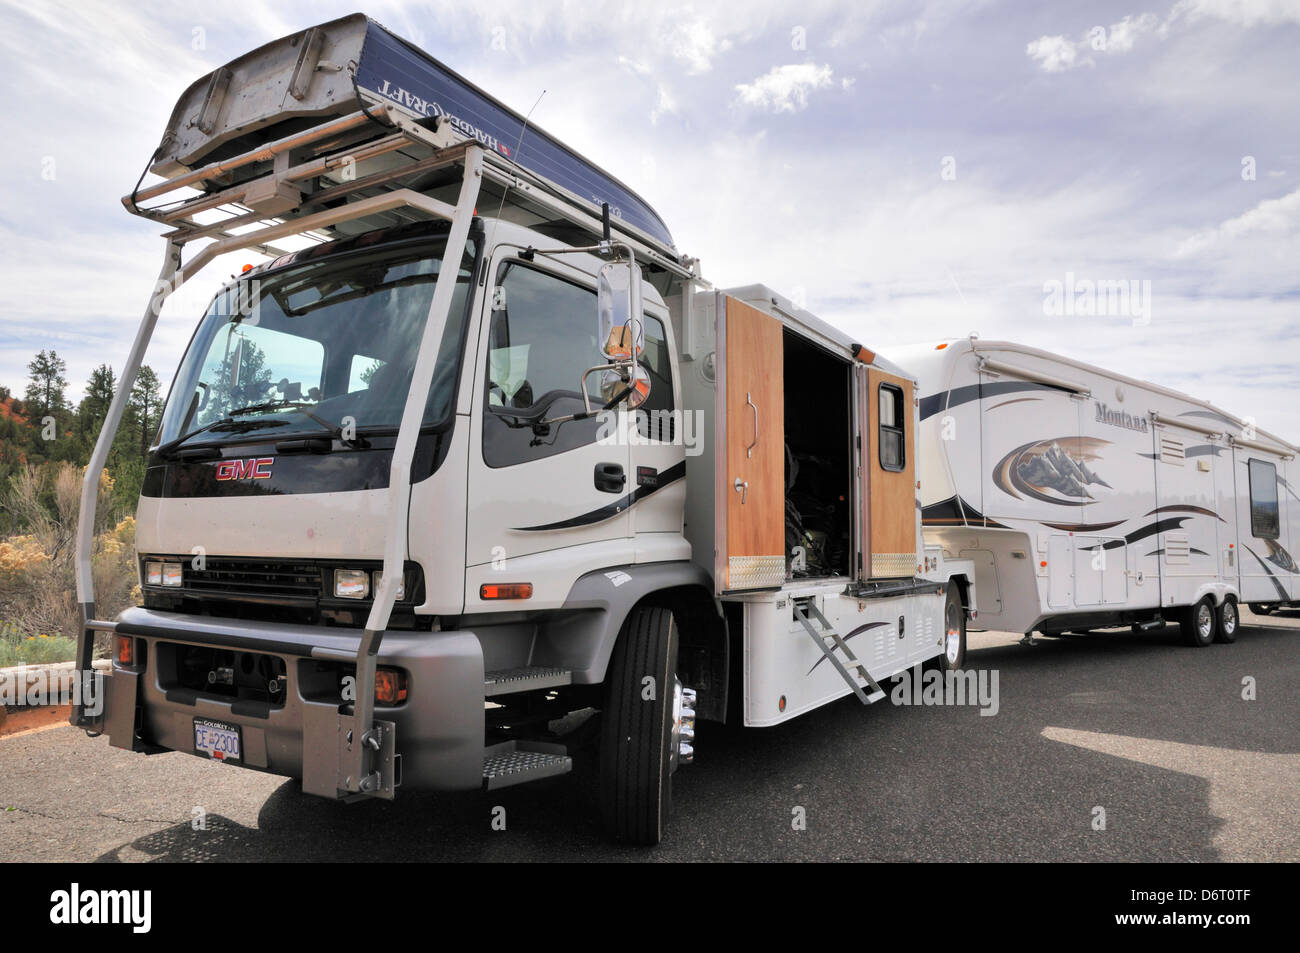 Rv Rig Including A Large Tow Vehicle Carrying A Boat On